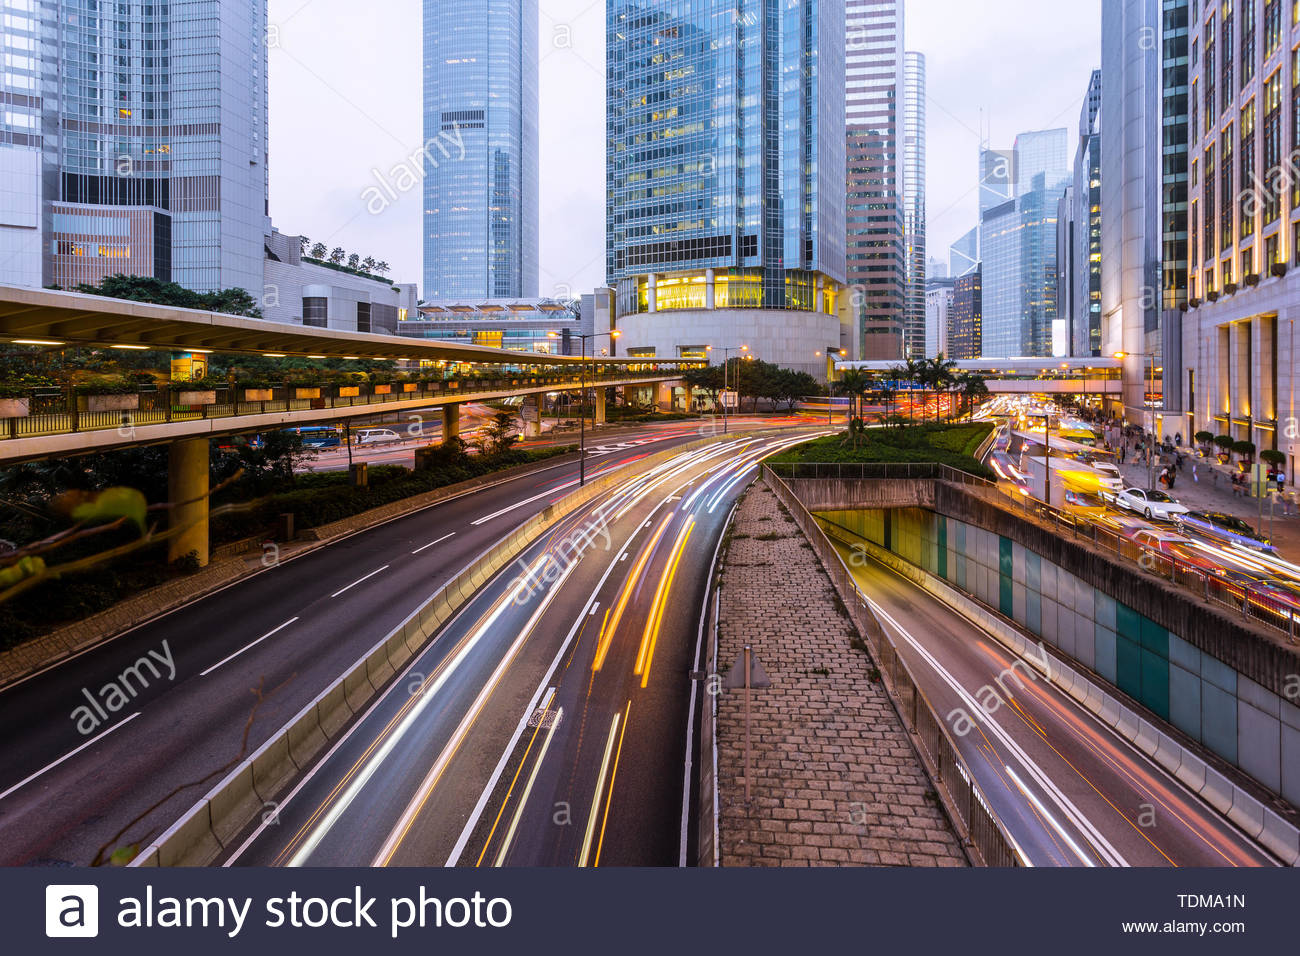 Busy traffic light trails and office buildings. - Stock Image